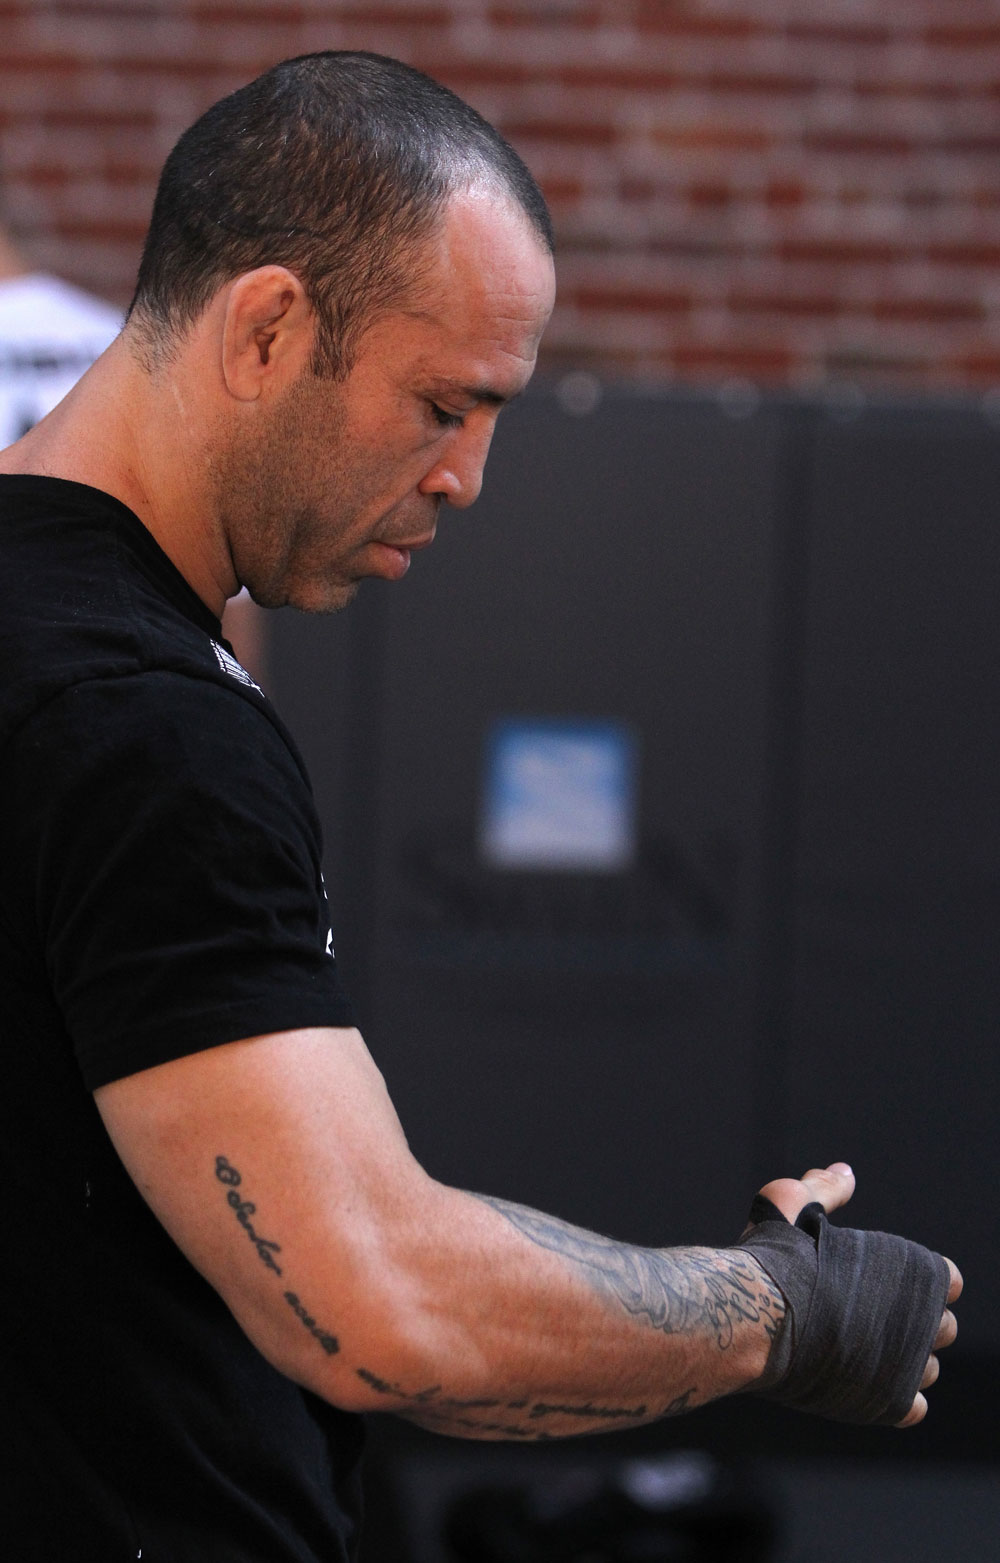 SAN JOSE, CA - NOVEMBER 16:  Wanderlei Silva wraps his hands before working out for the fans and media during the UFC 139 open workouts at the Heroes Martial Arts Gym on November 16, 2011 in San Jose, California.  (Photo by Josh Hedges/Zuffa LLC/Zuffa LLC via Getty Images)